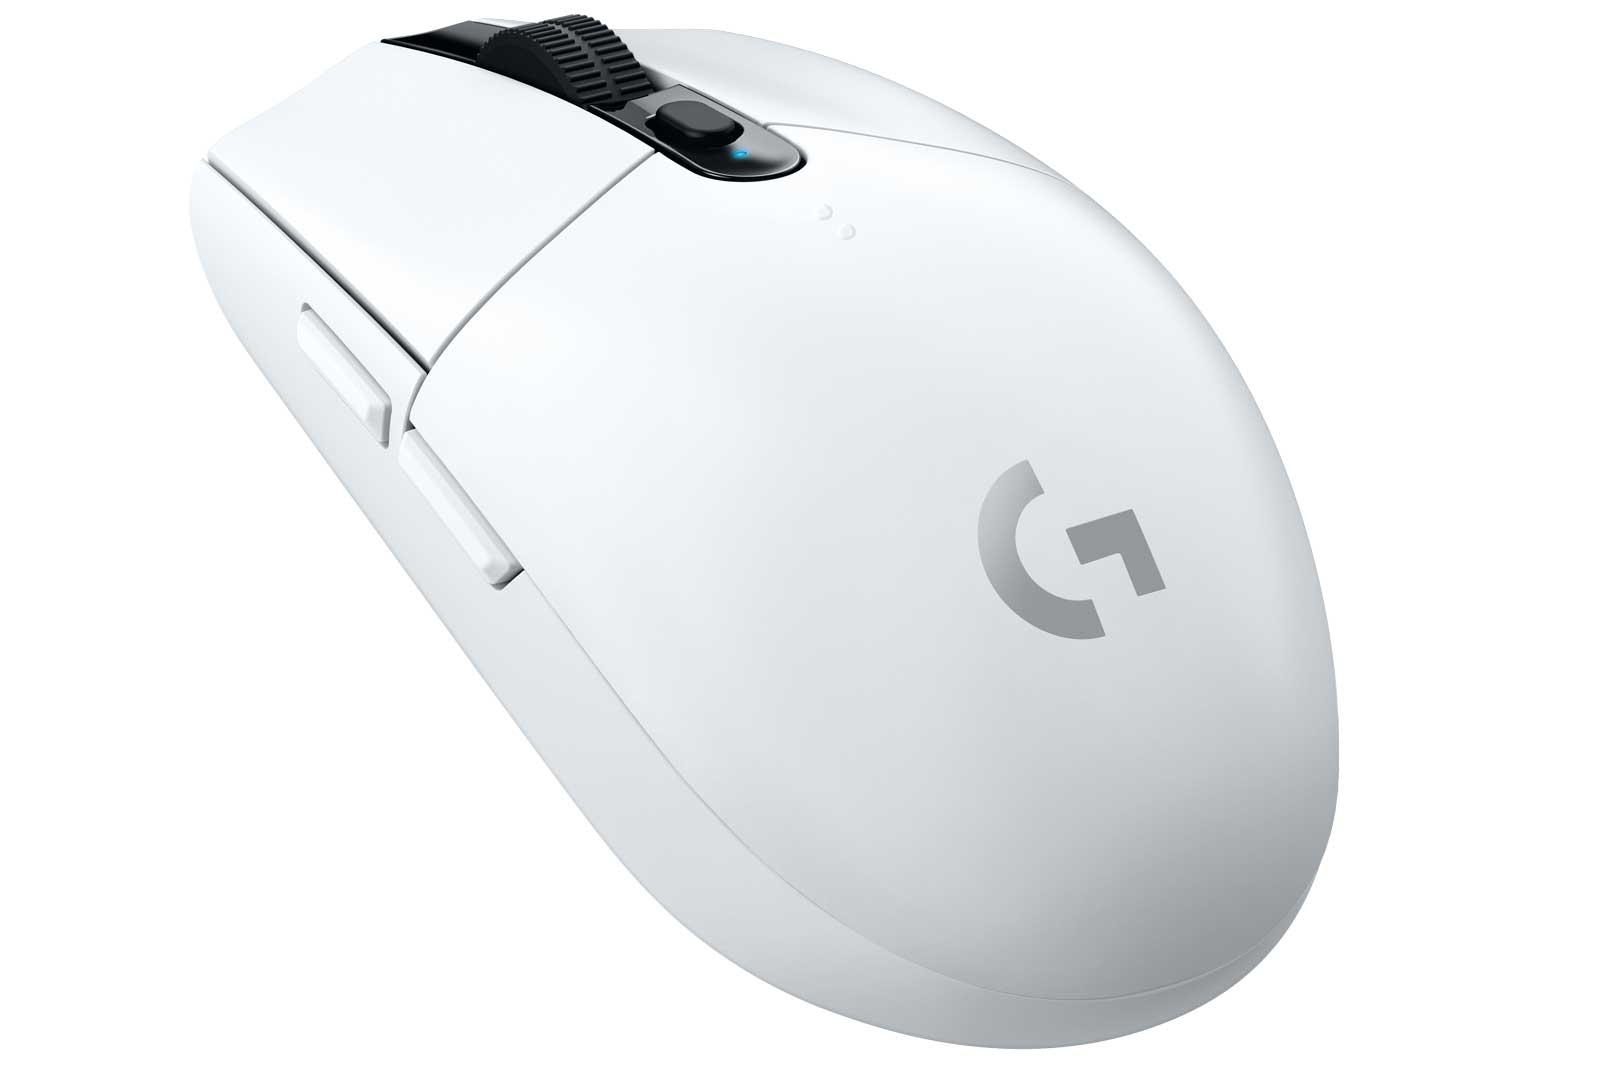 Logitech's G305 is an affordable, no-lag wireless gaming mouse